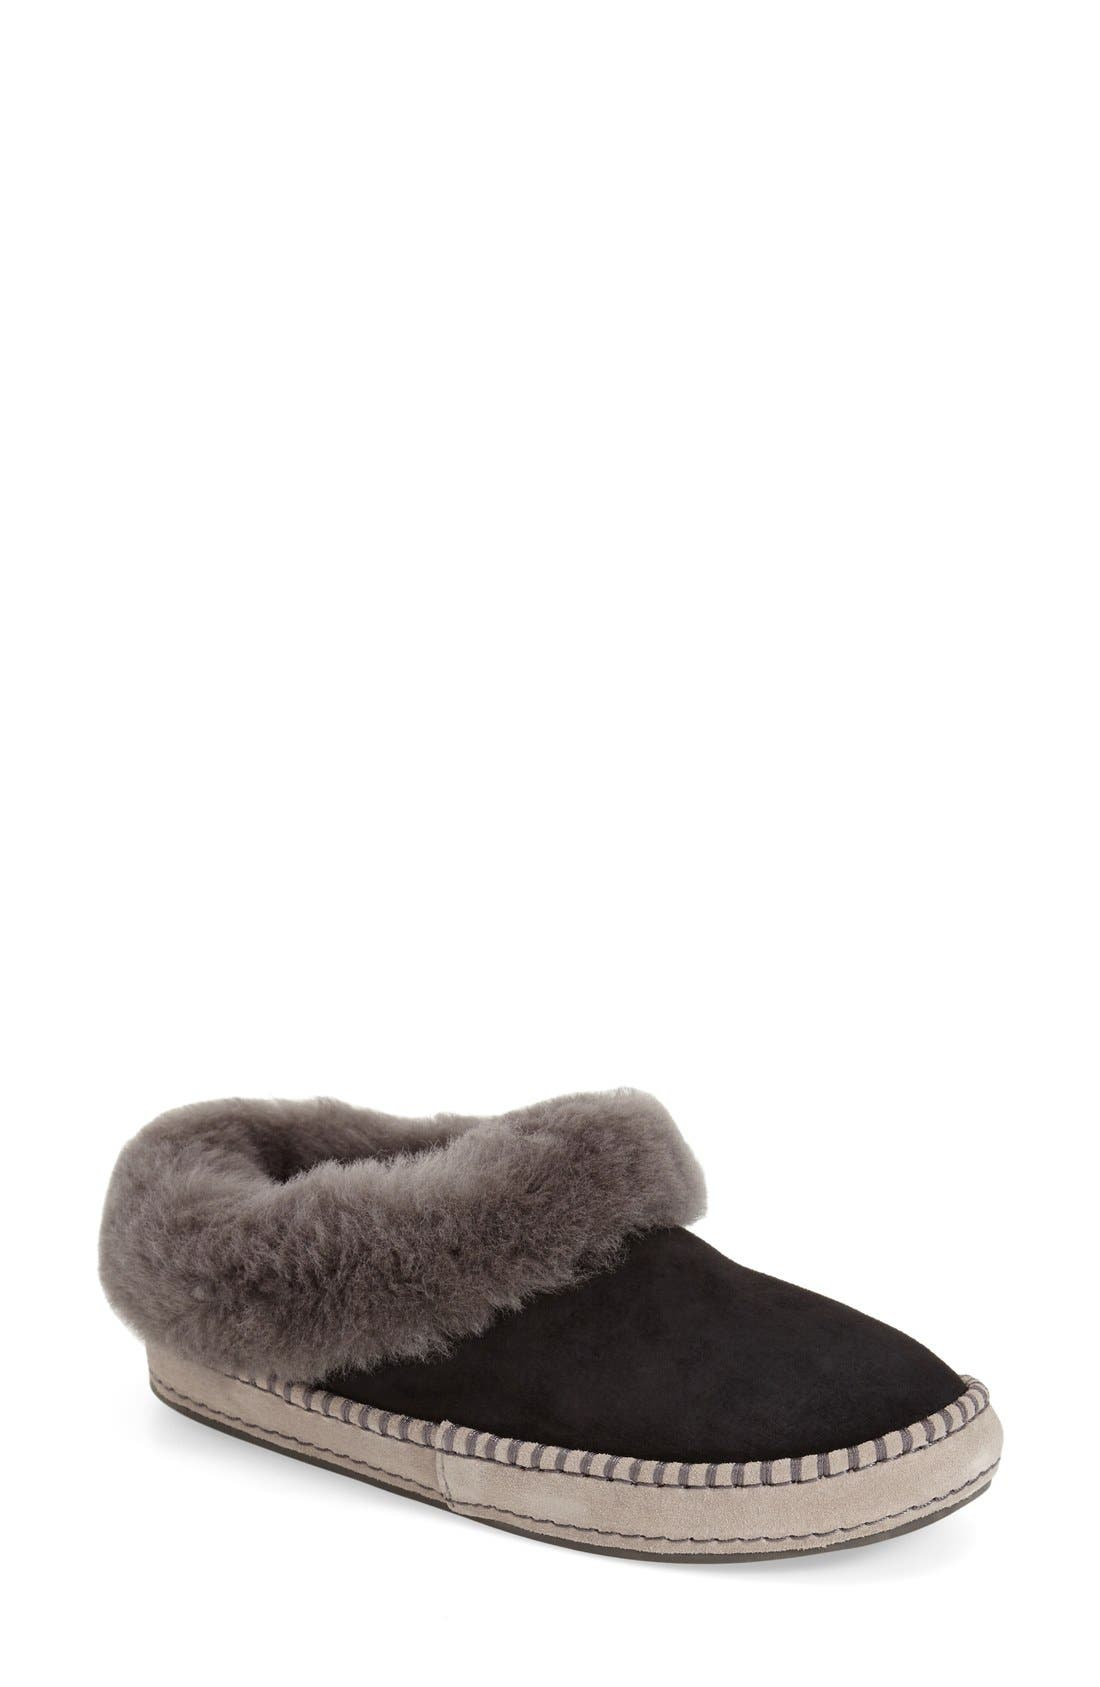 Alternate Image 1 Selected - UGG® Wrin Slipper (Women)